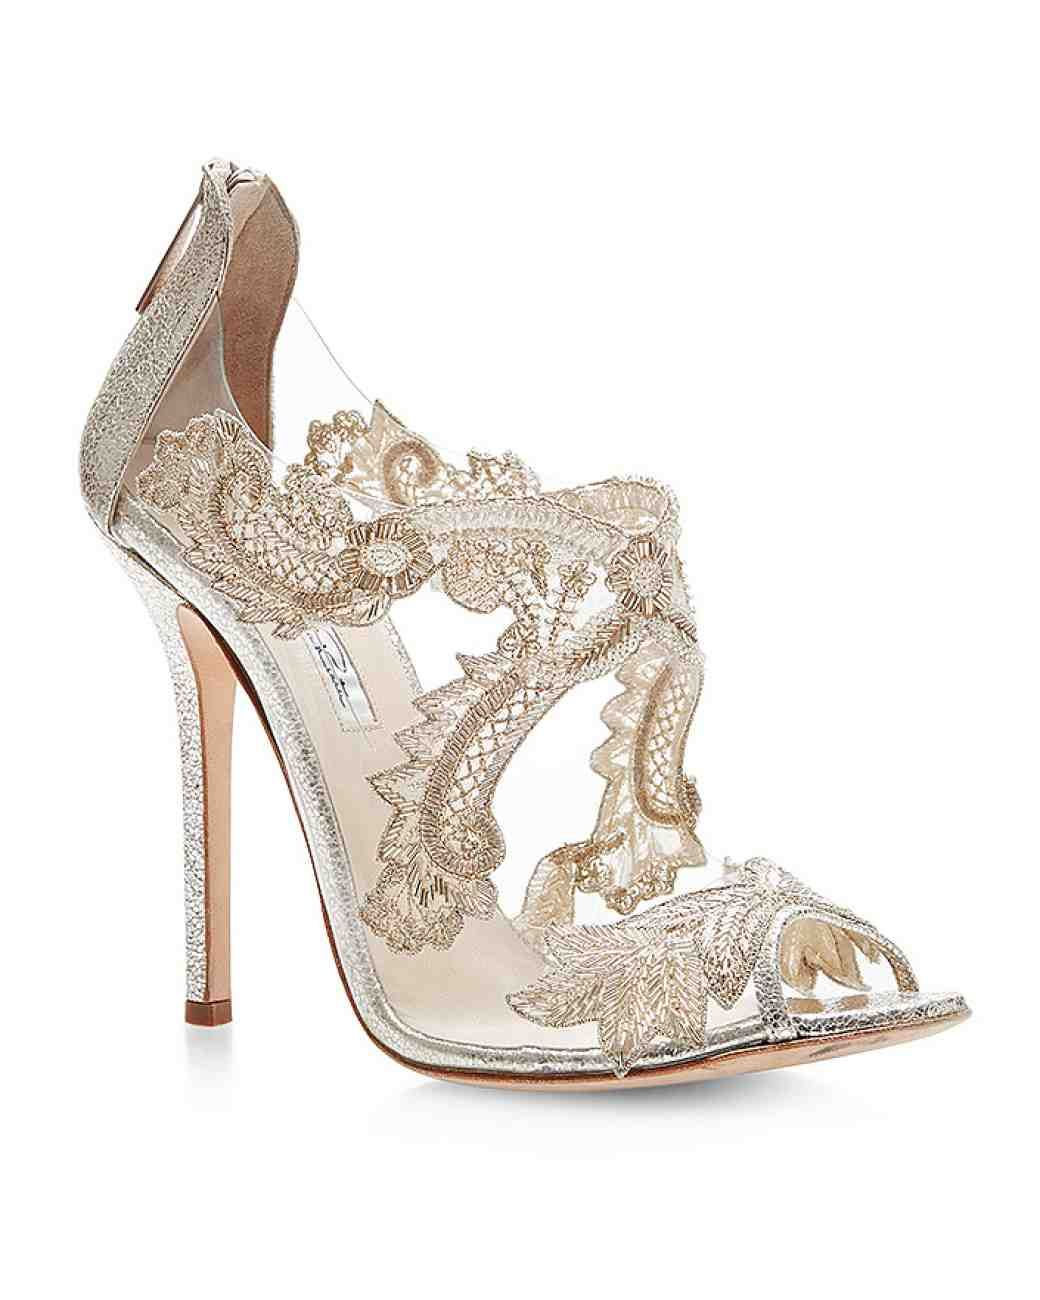 4461f12a8ce0 Stylish Wedding Shoes That Can Drive You Crazy